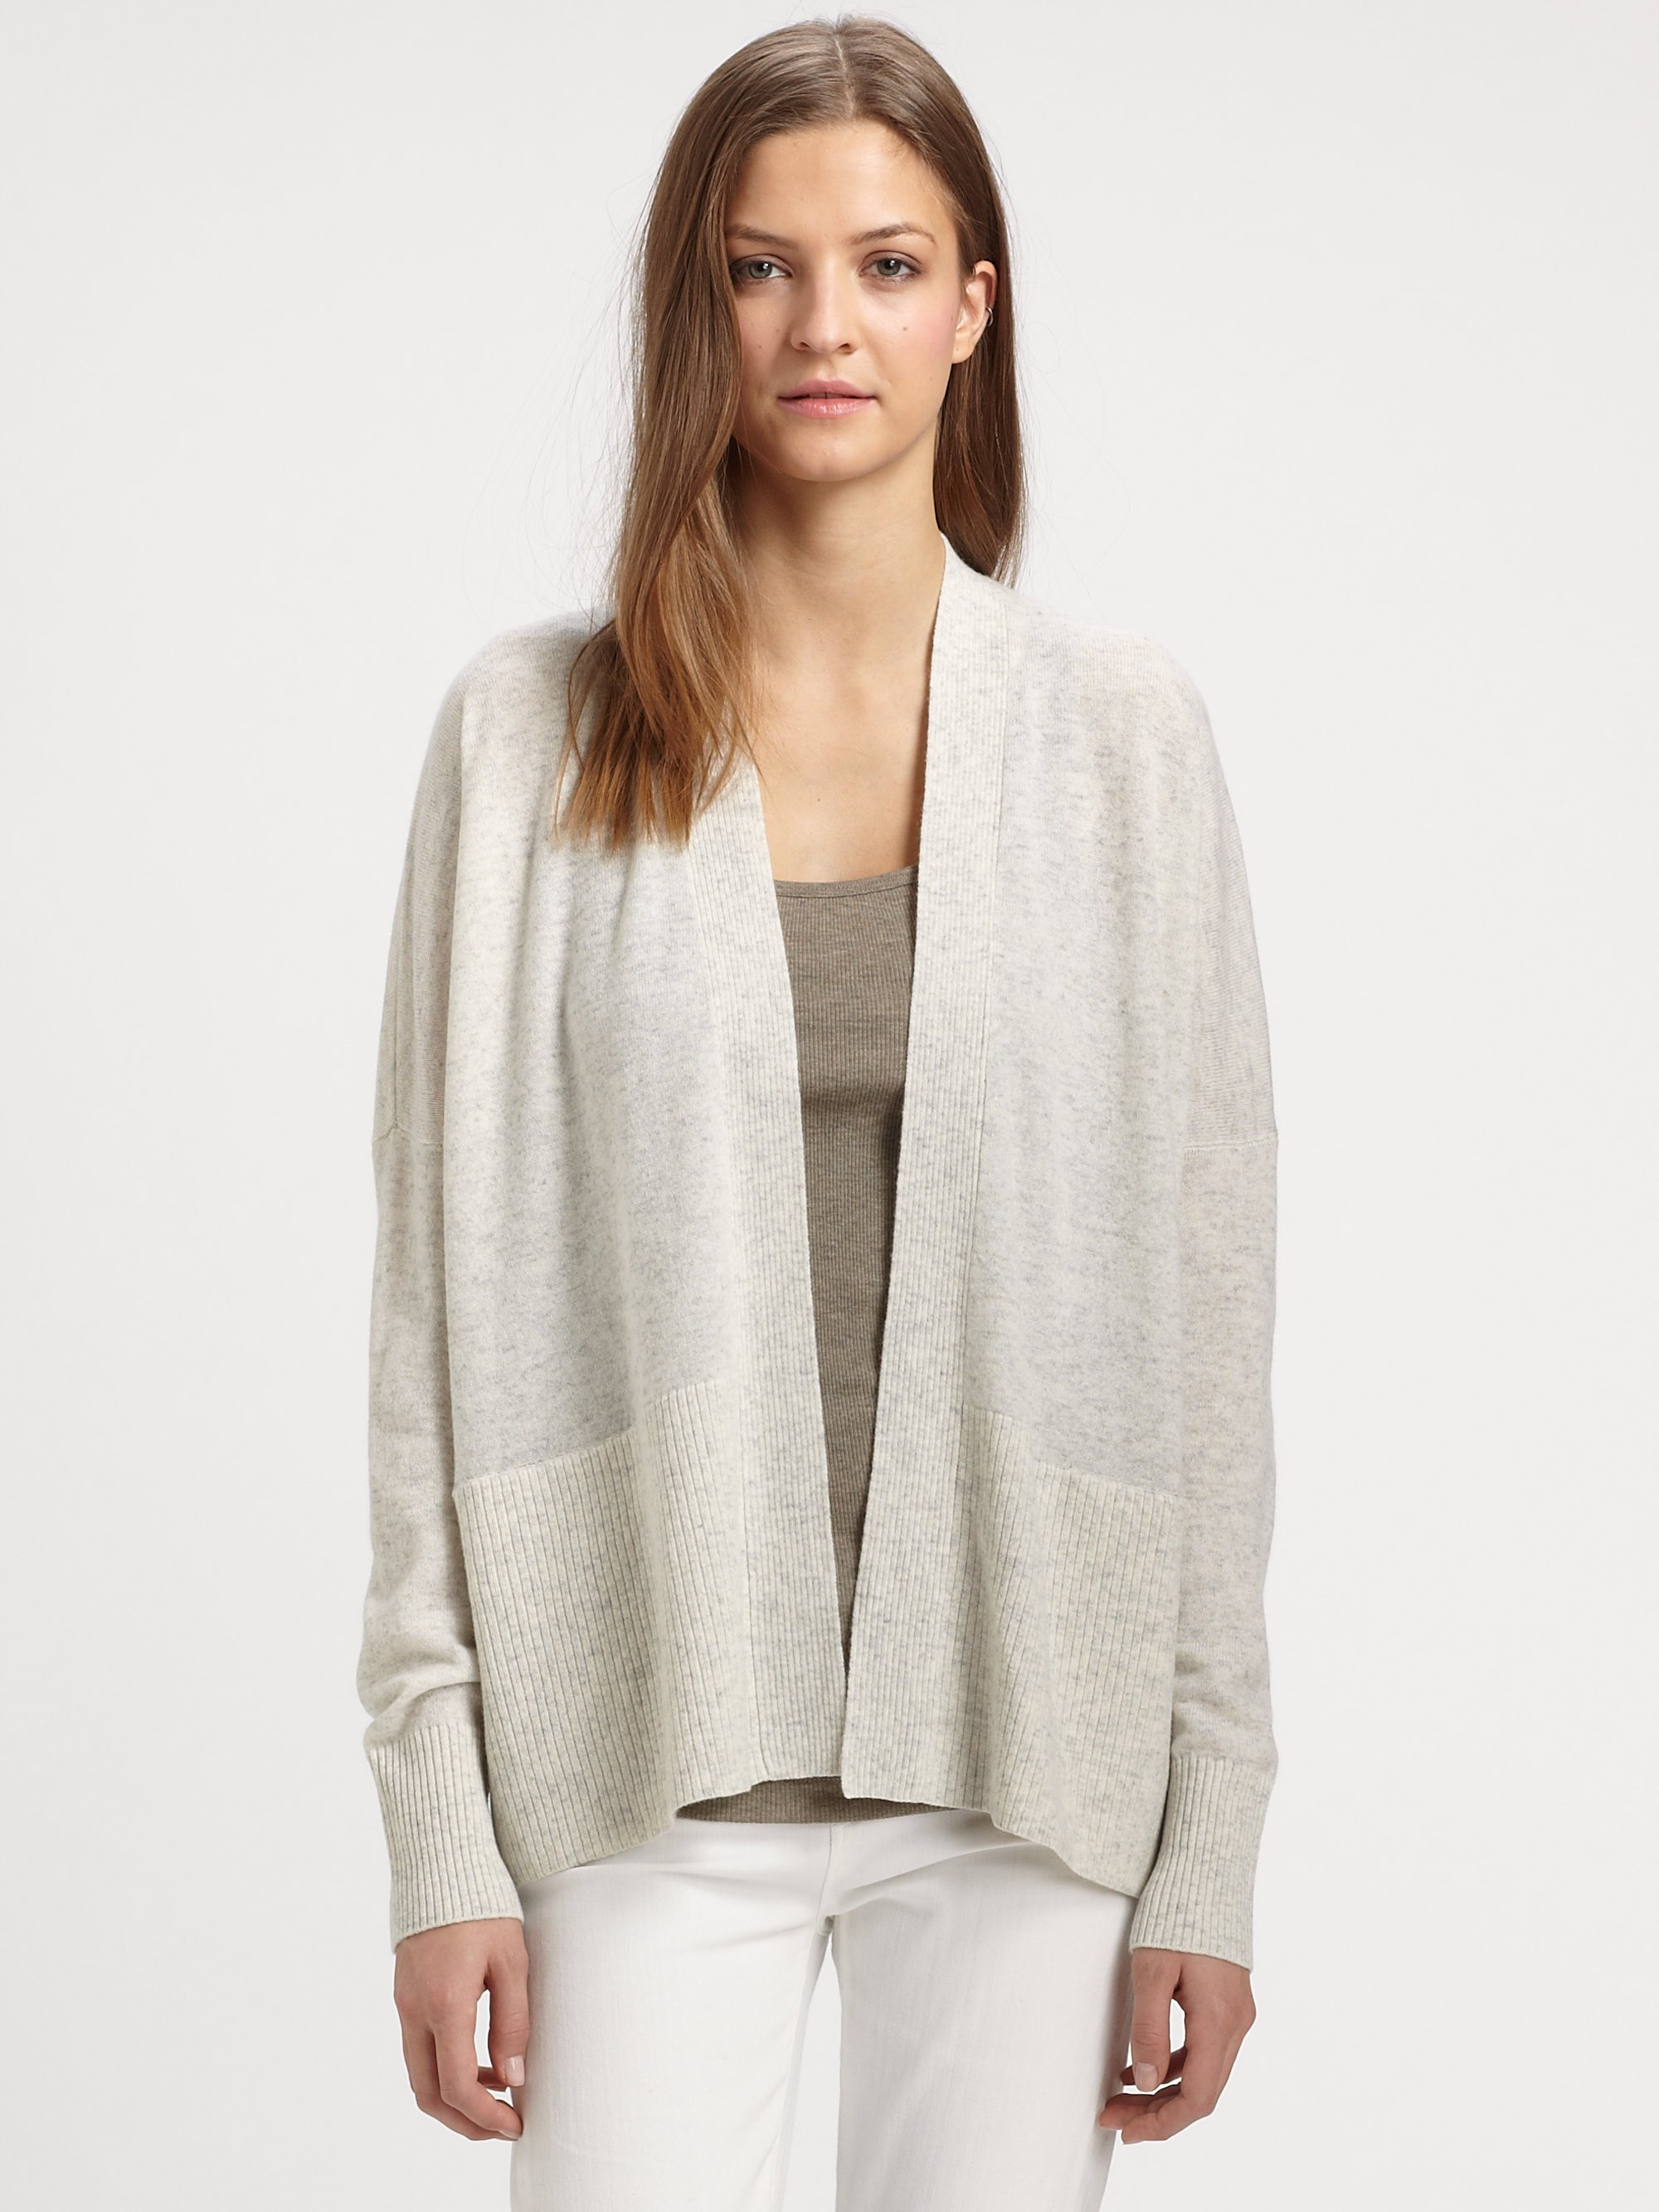 Vince Open-front Cashmere Cardigan in Metallic | Lyst